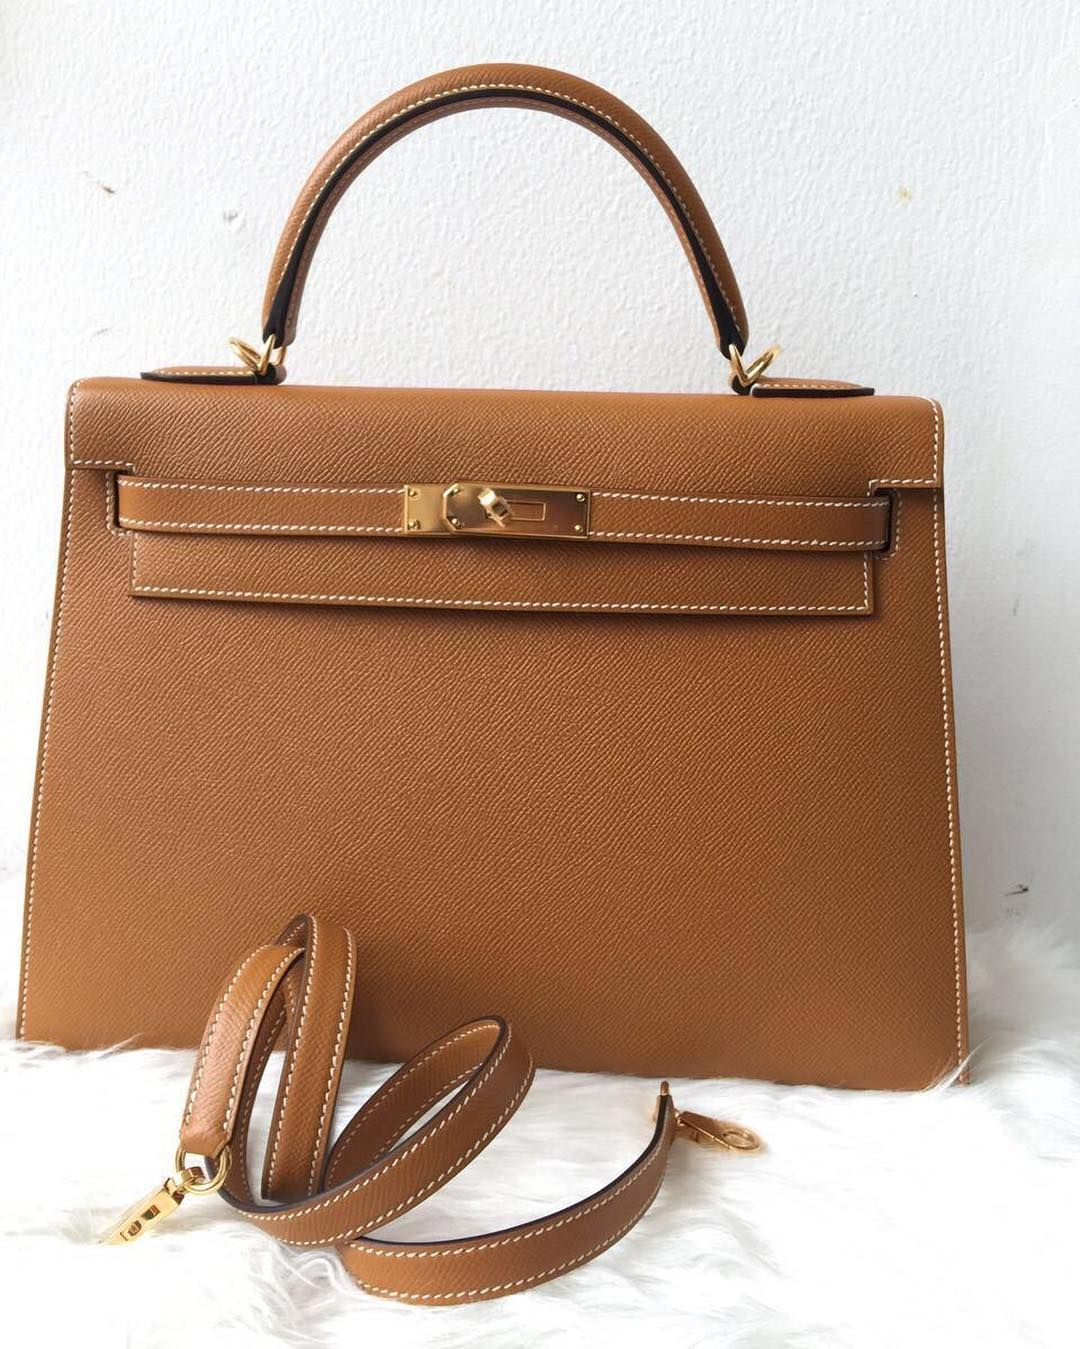 3a93e5f08a0c5 Hermes Kelly 32 Toffee epsom sellier ghw